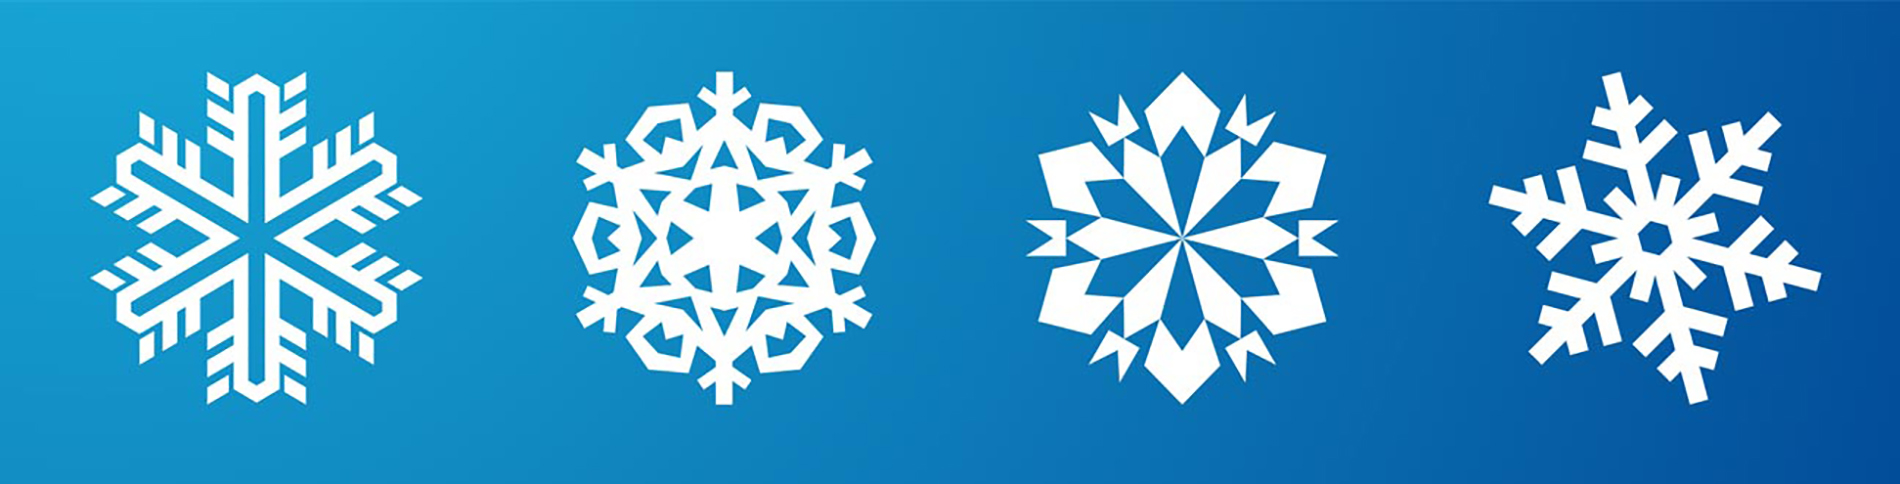 Snowflake graohical image